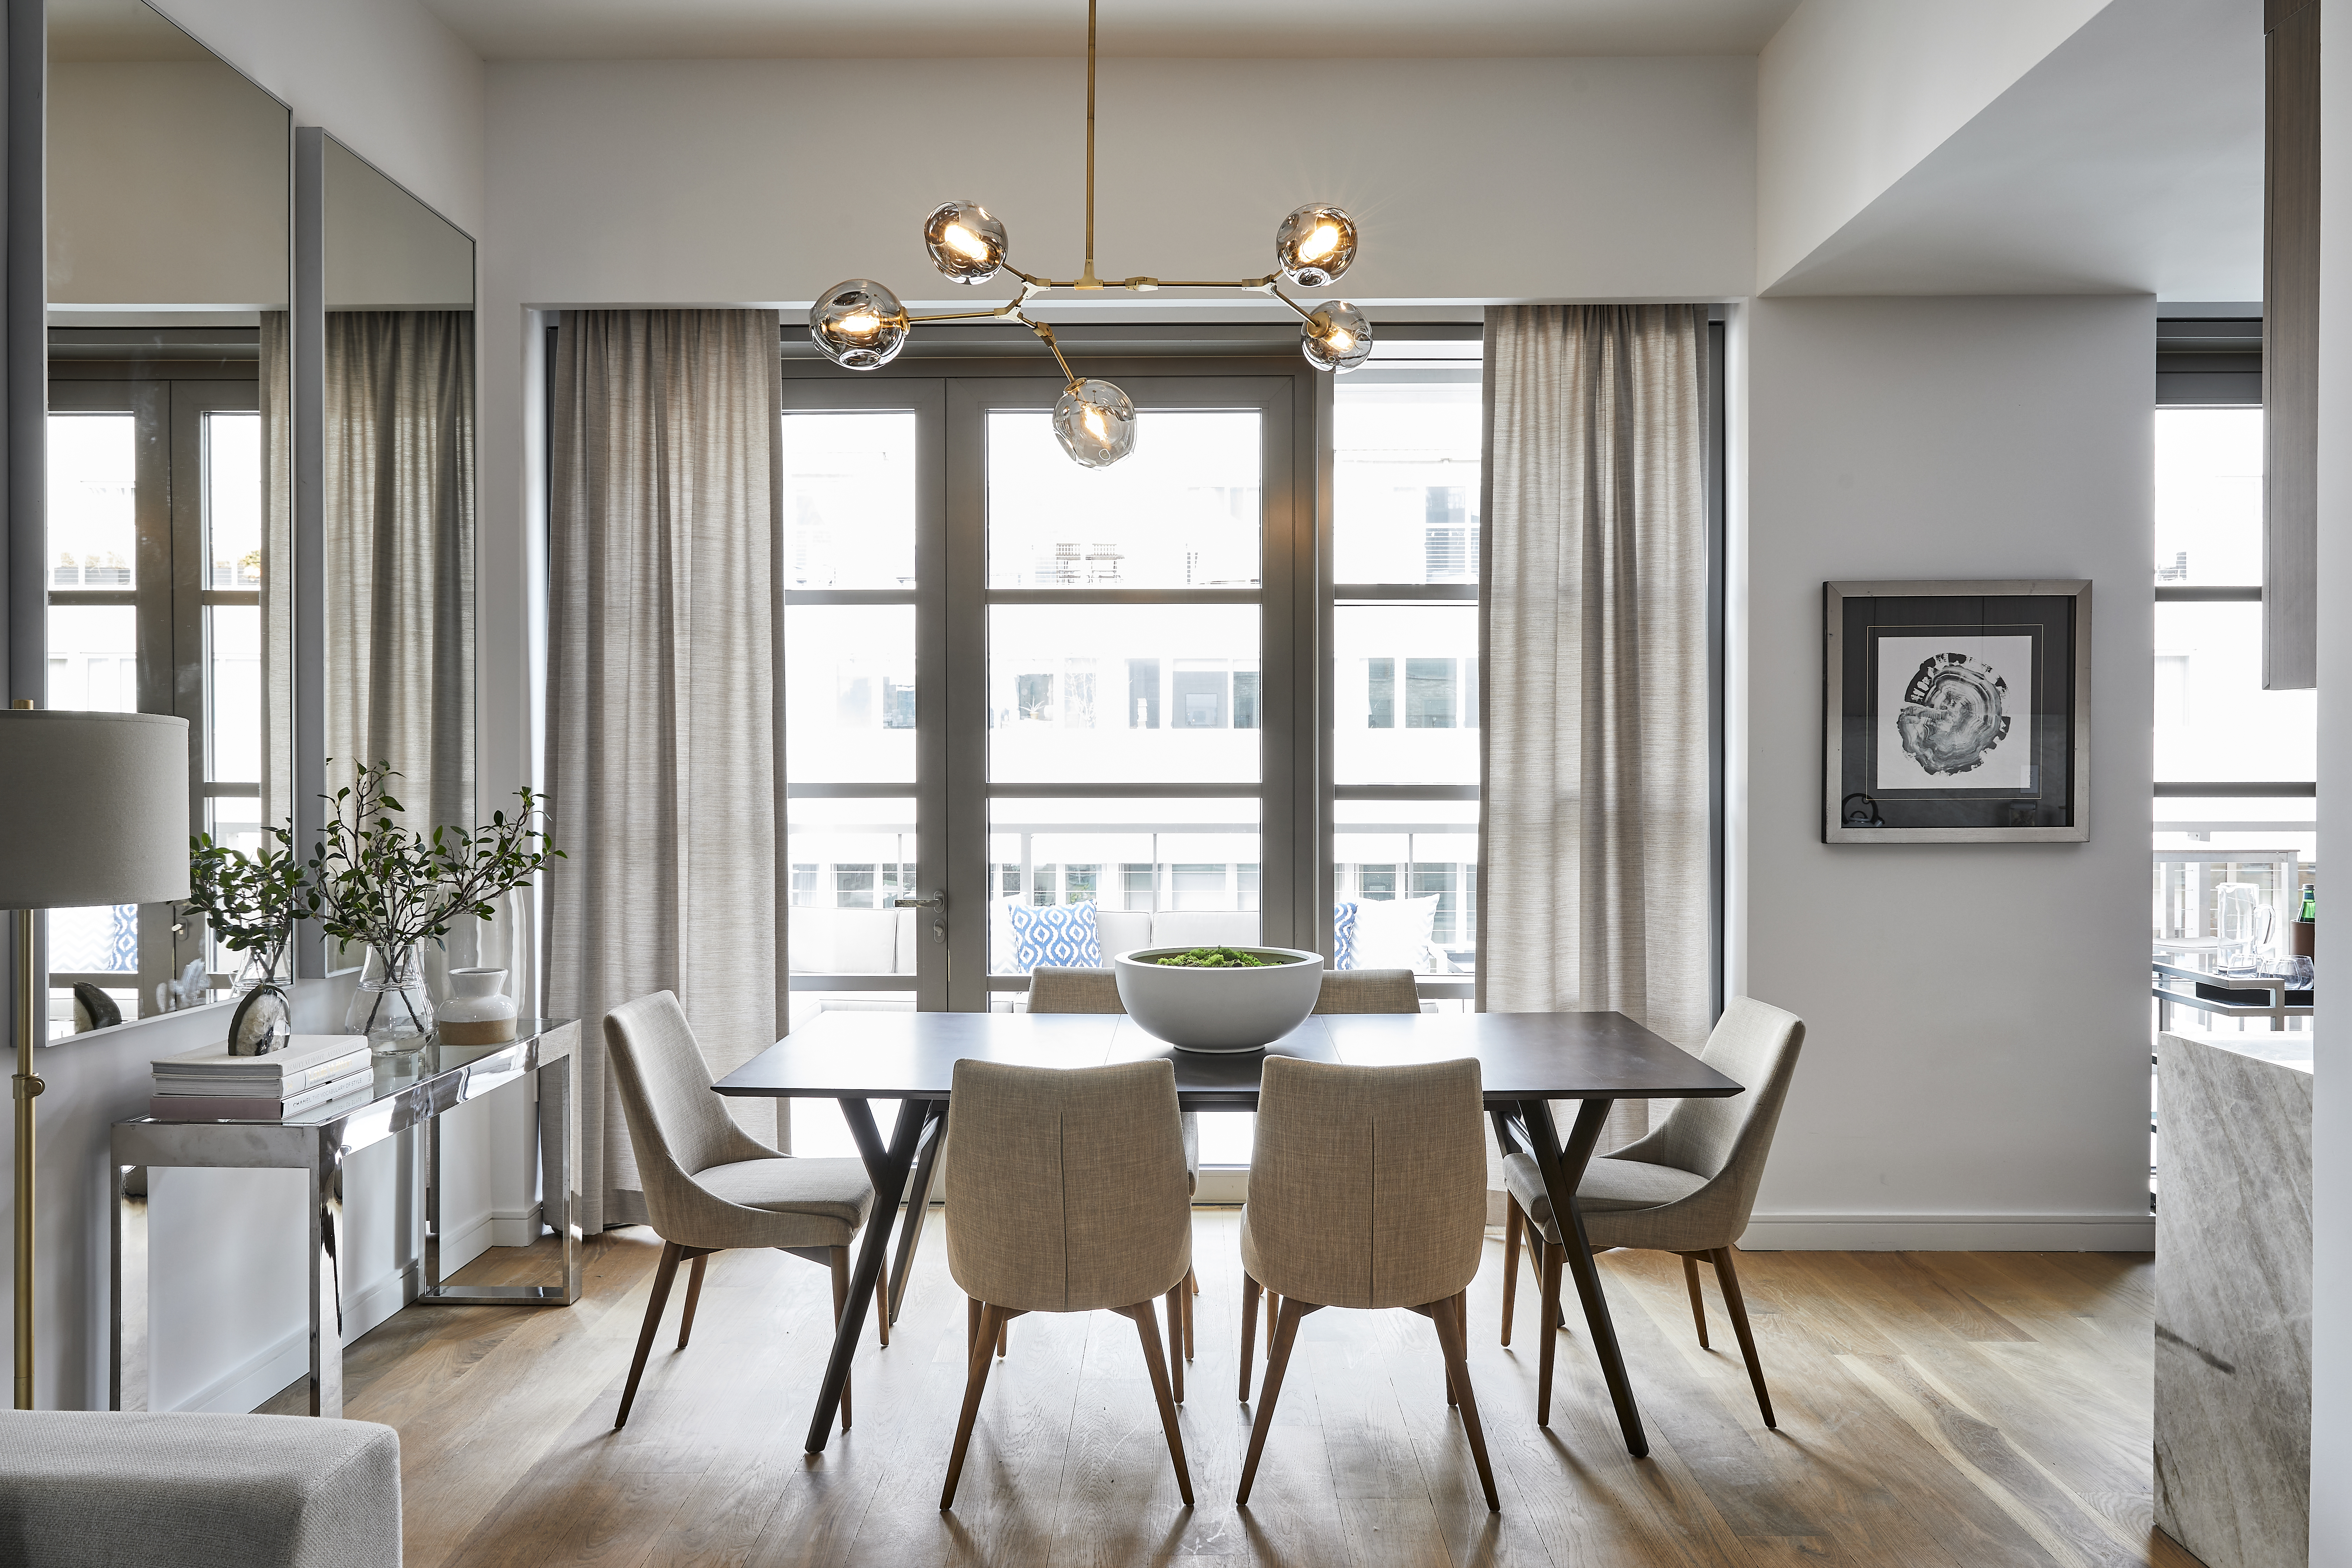 Mirrors hung vertically in this dining space help add light and create the illusion of an additional set of windows.